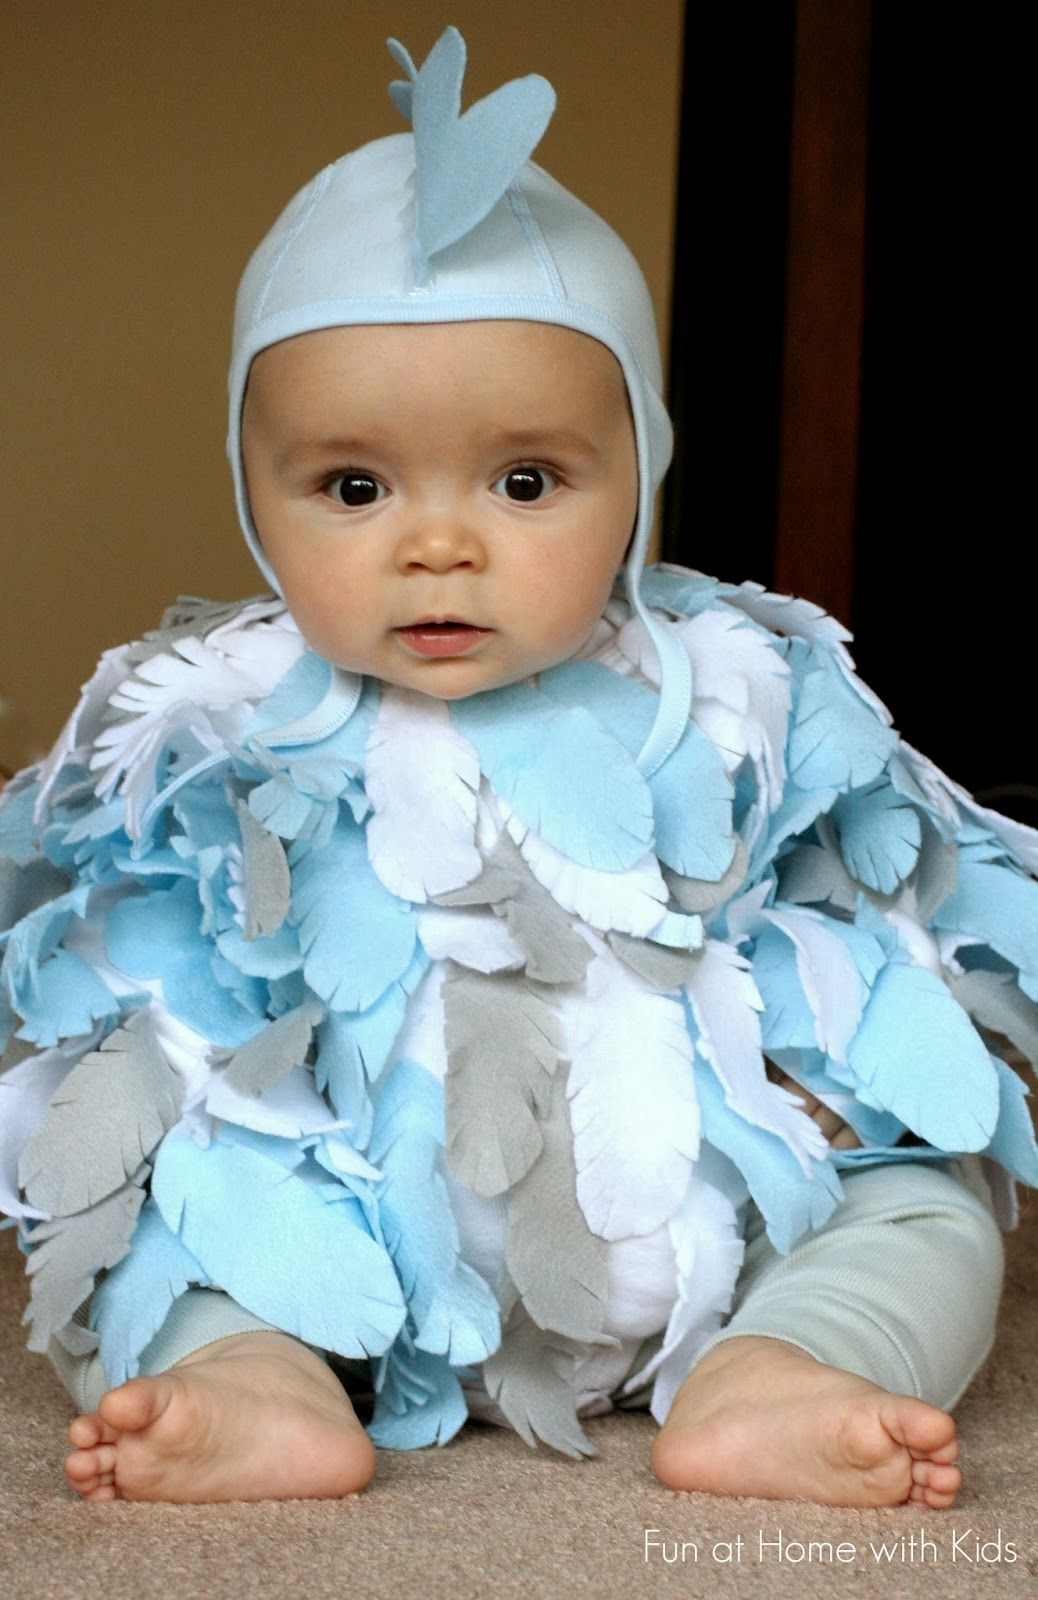 Cute DIY Baby Halloween Costume Ideas - Best Homemade Infant Halloween Costumes  sc 1 st  Redbook & Cute DIY Baby Halloween Costume Ideas - Best Homemade Infant ...